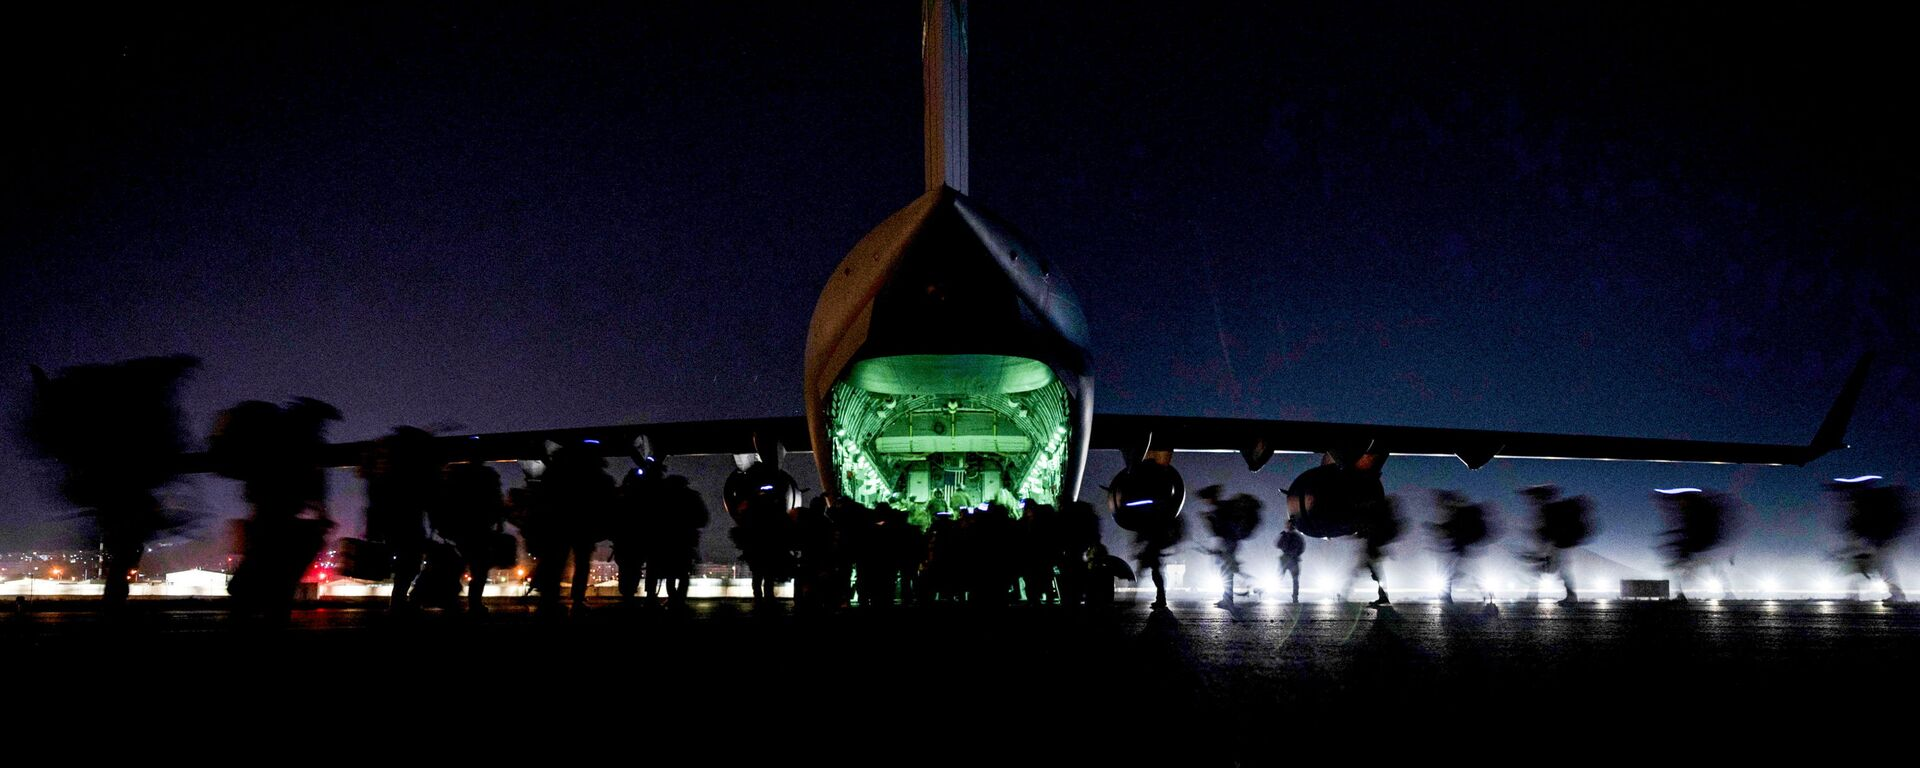 U.S. Soldiers, assigned to the 82nd Airborne Division, prepare to board a U.S. Air Force C-17 Globemaster III aircraft to leave Hamid Karzai International Airport in Kabul, Afghanistan August 30, 2021 - Sputnik International, 1920, 28.09.2021